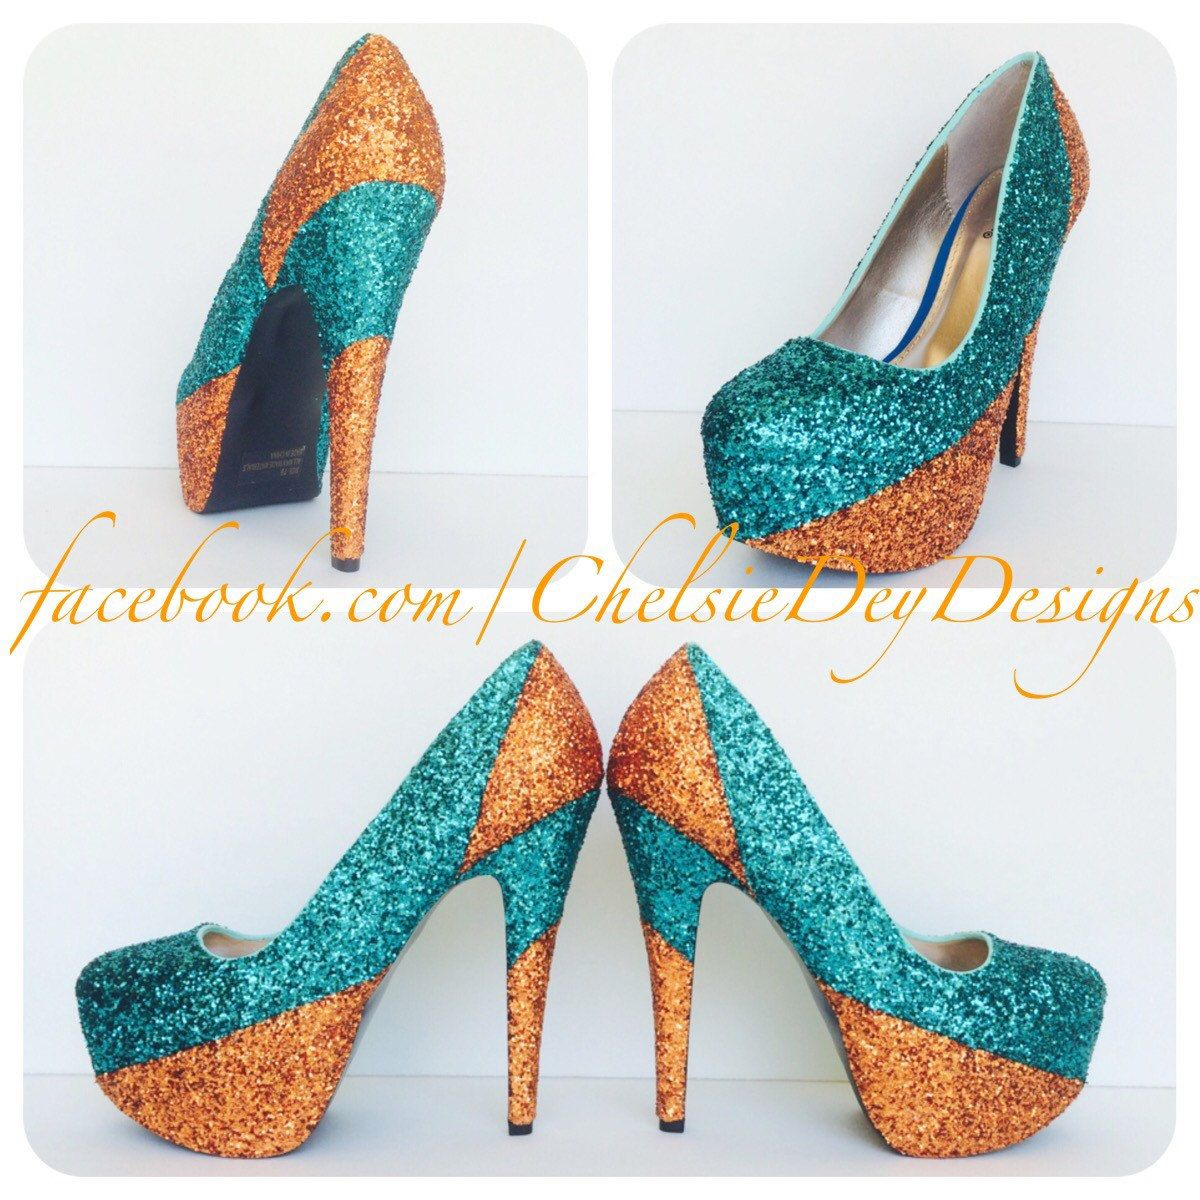 e8351498861c Glitter High Heels - Teal Blue White Ombre Peep Toe Pumps - Blue Wedding  Shoes - Sparkly Prom Heels - Open Toe Platform Pumps